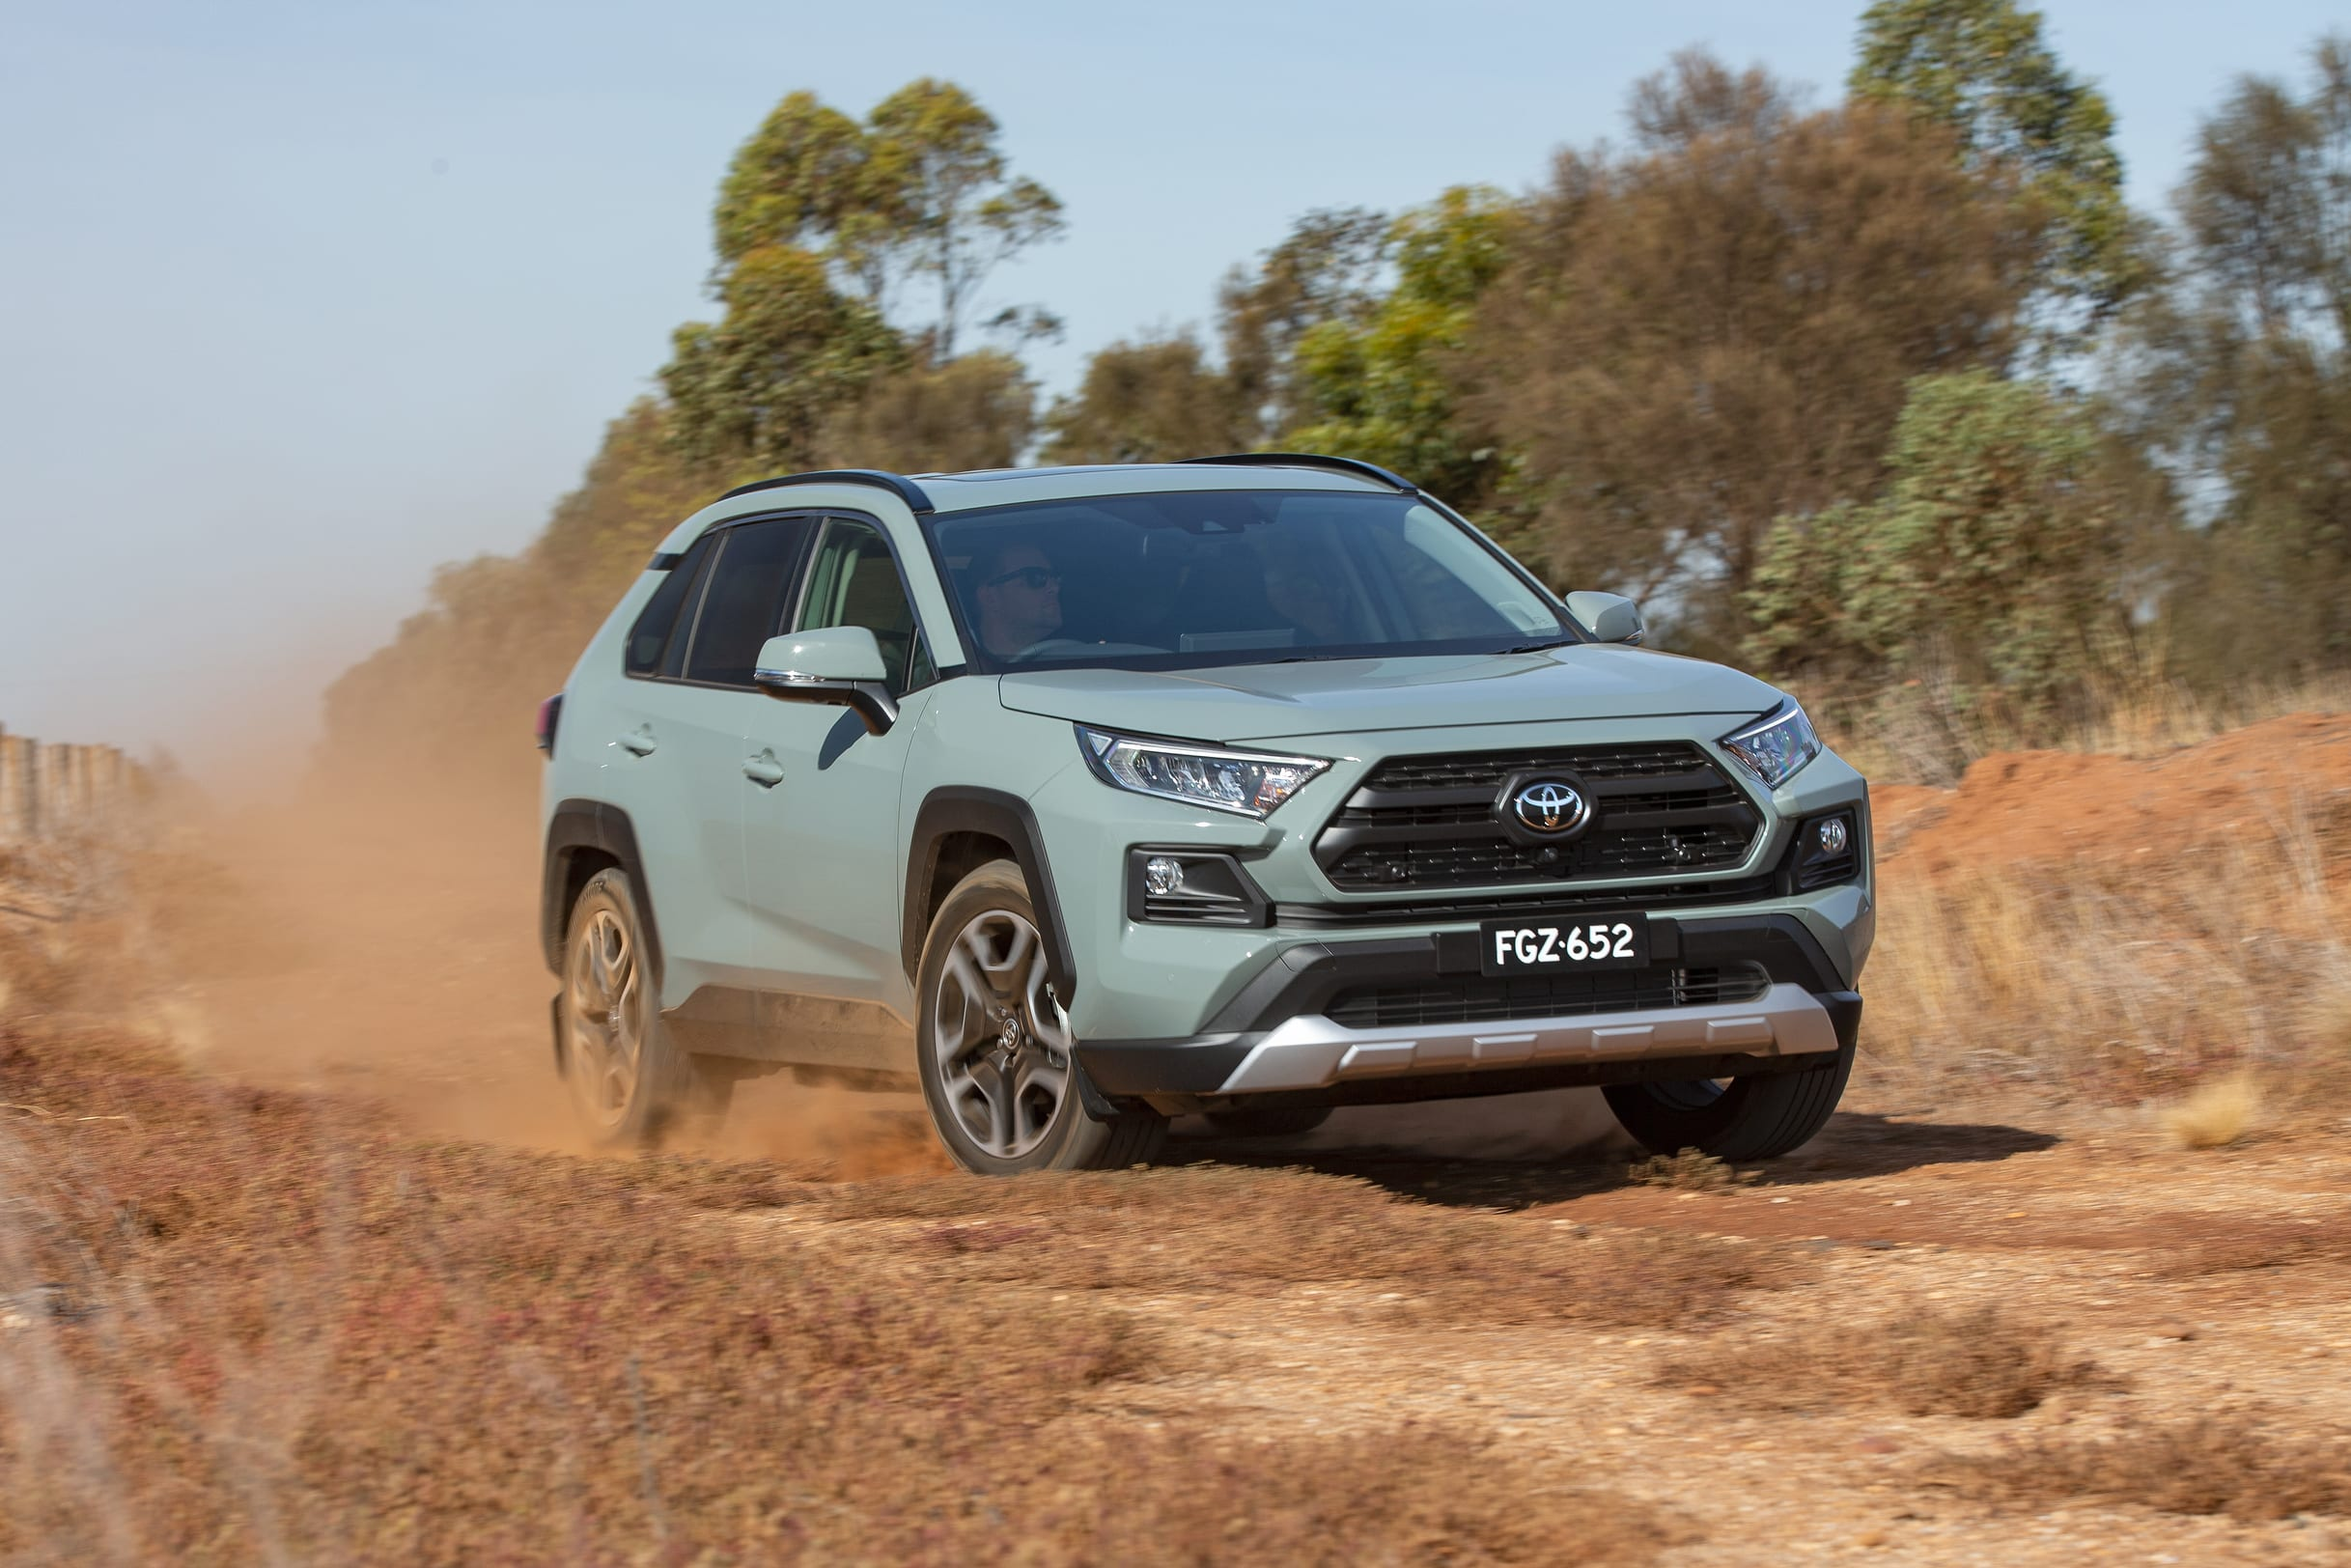 New Toyota Rav4 2021 Pricing And Spec Detailed Increased Cost But More Equipment For Mazda Cx 5 Rival Car News Carsguide